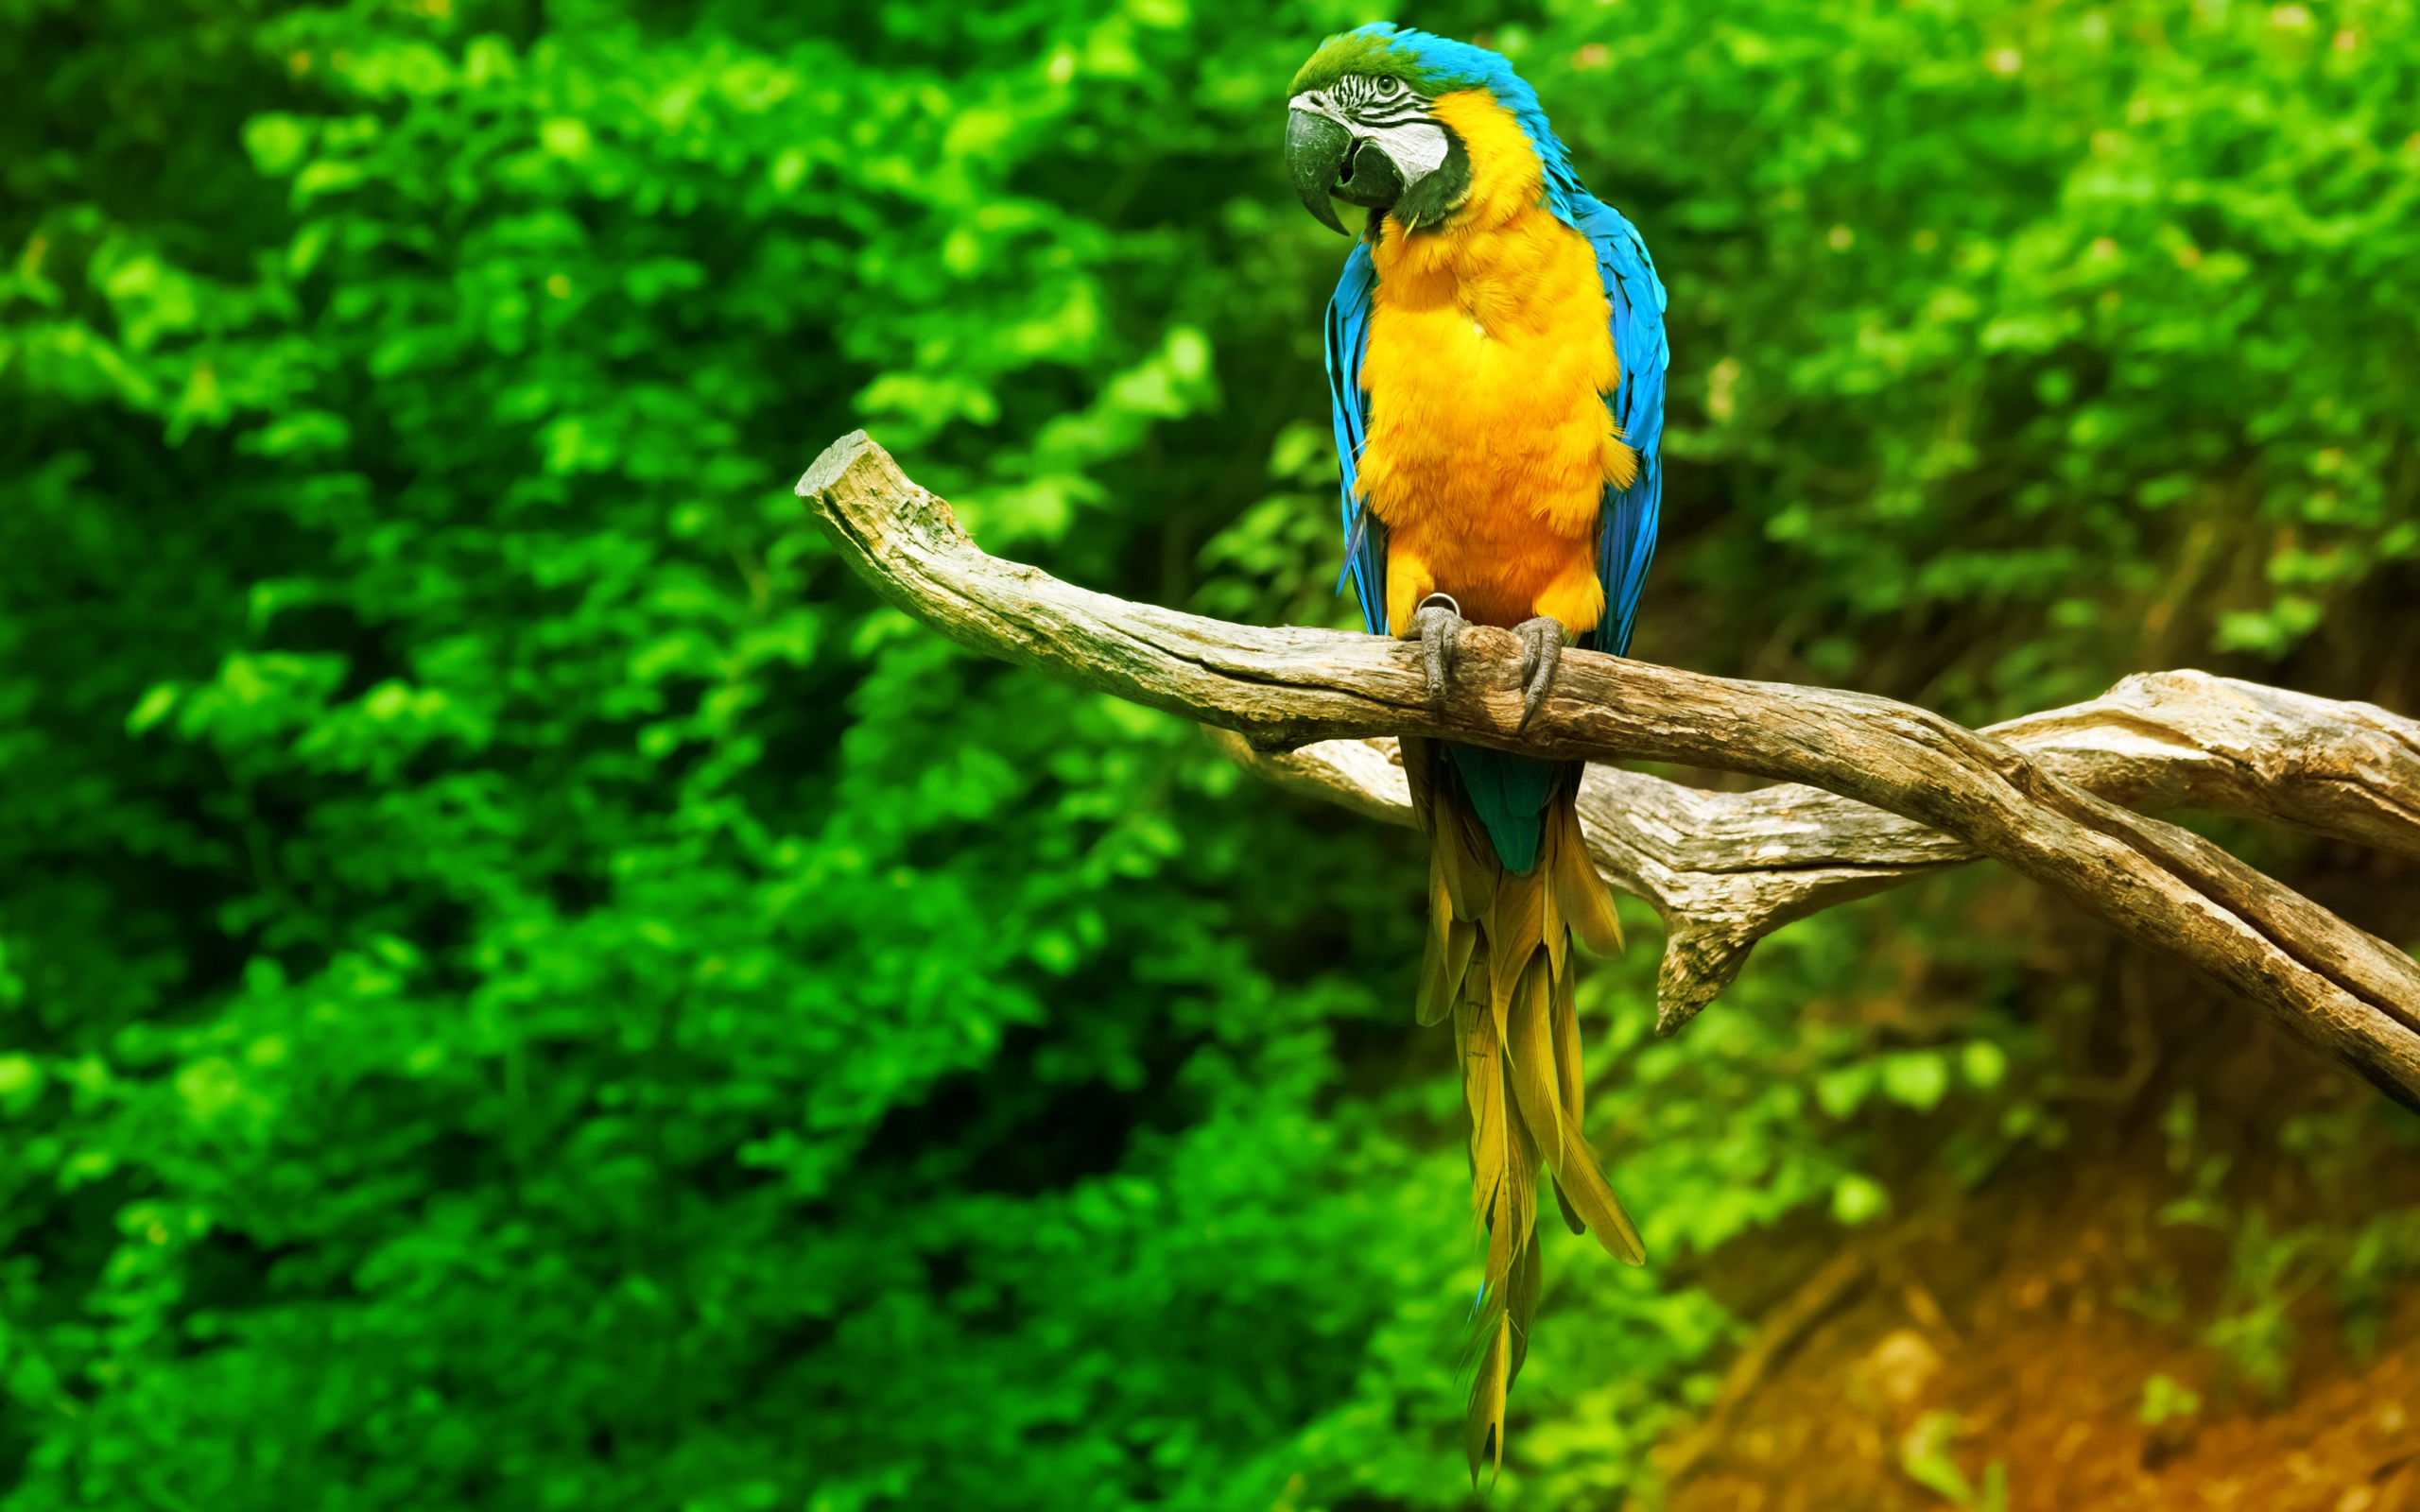 Sitting Macaw Parrot